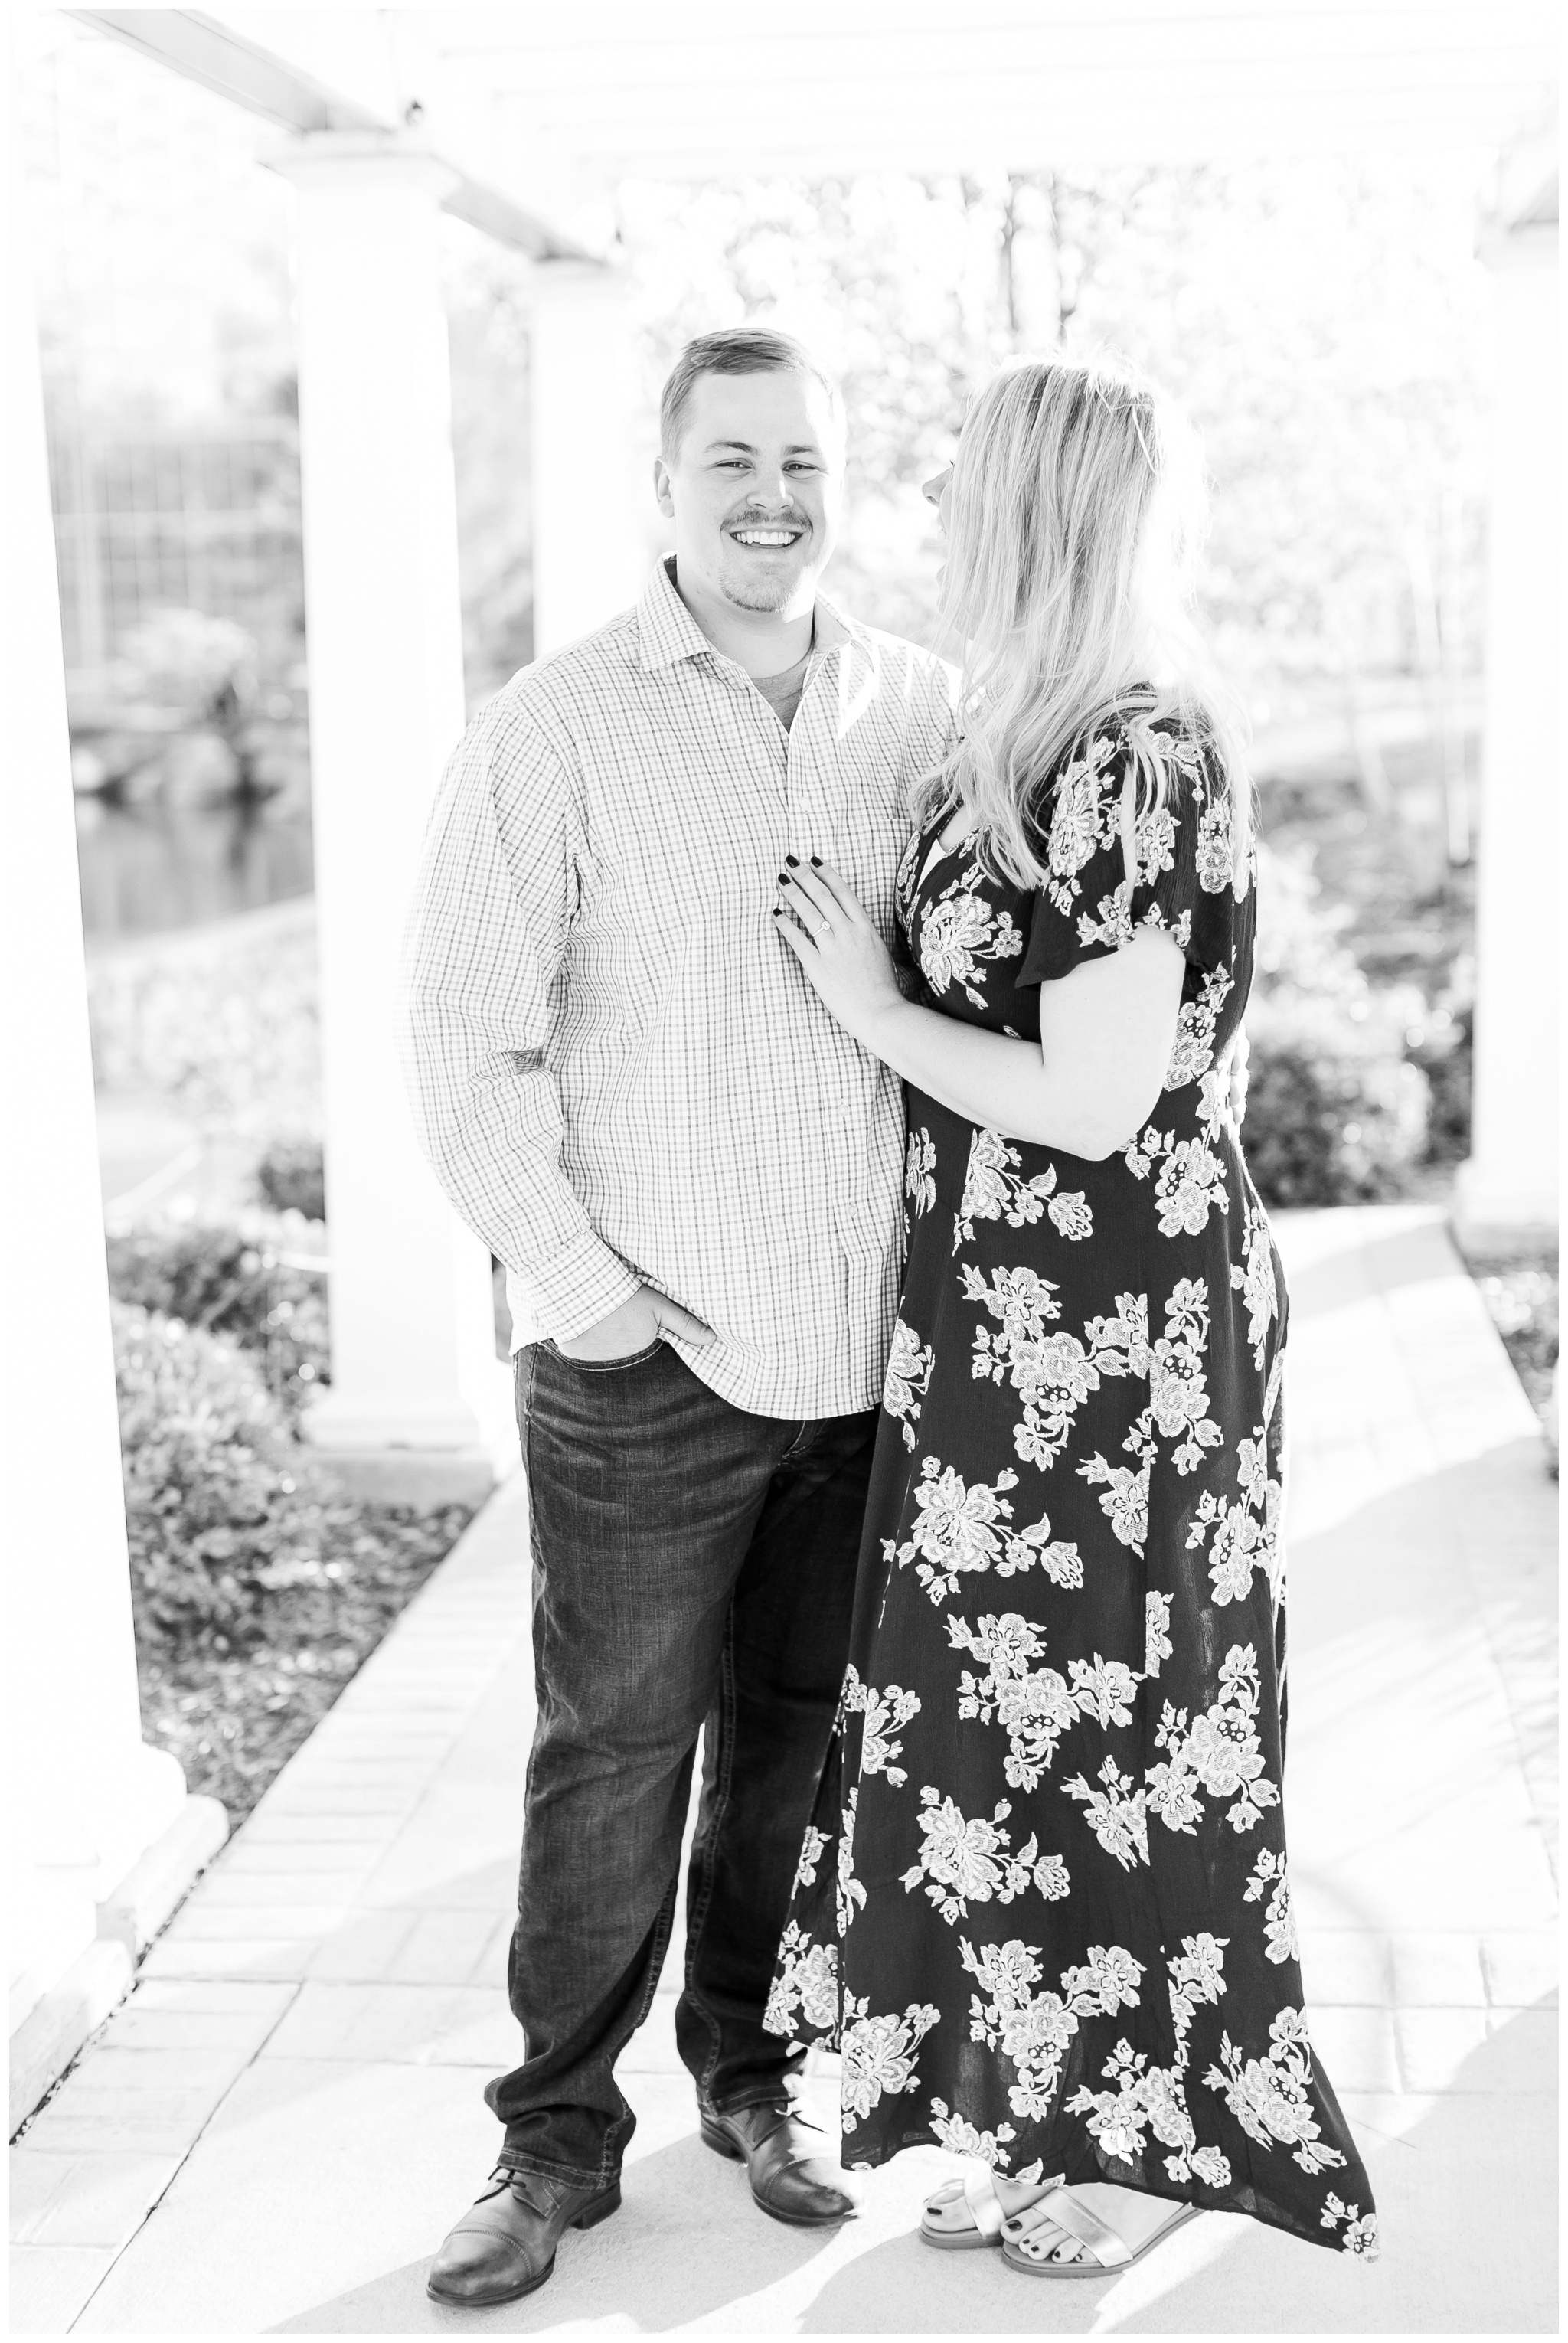 nicholas_conservatory_engagement_session_rockford_illinois_caynay_photo_2986.jpg